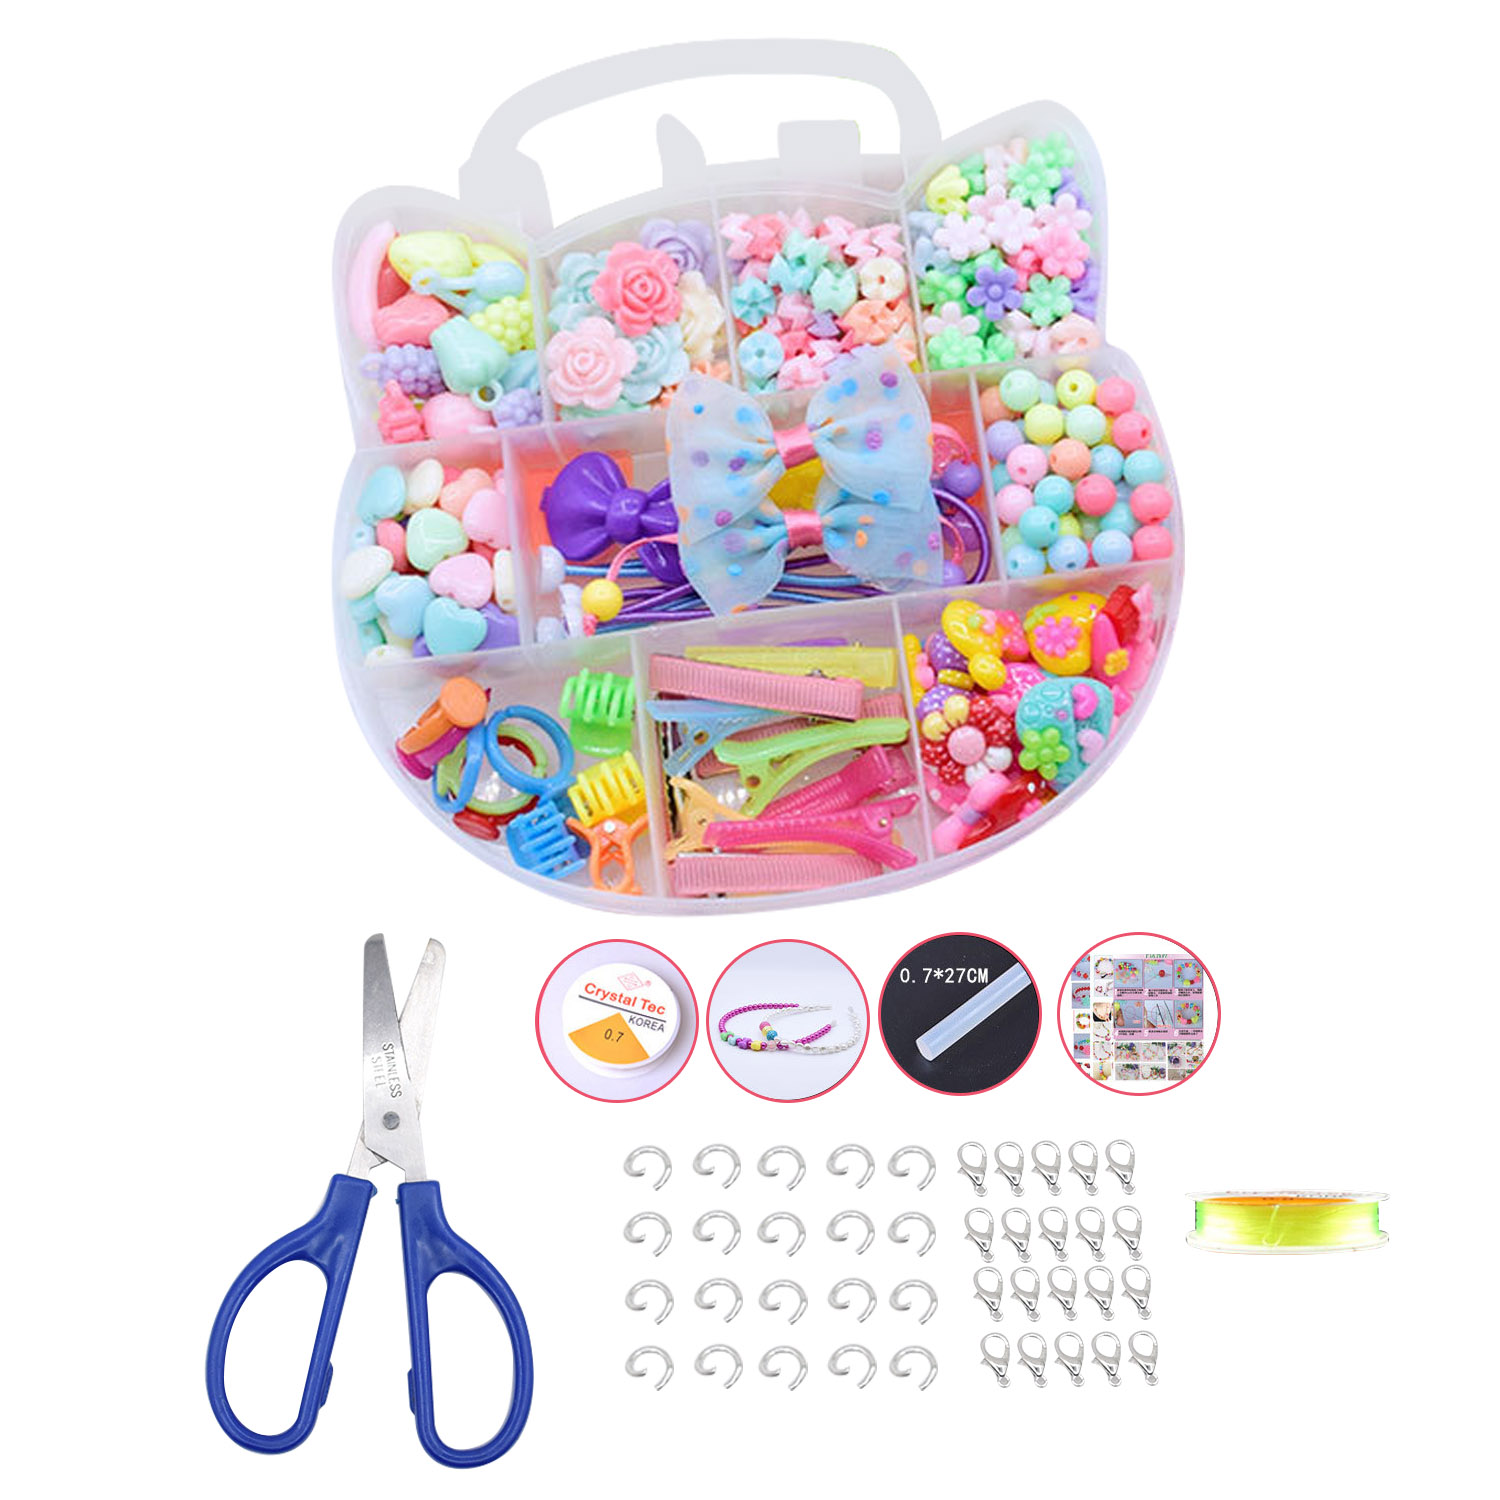 243Pcs Different Types Plastic DIY Beads Set Kit Cute Fashion Decorative Toy Gift Kid Children Girl Bracelet Necklace Making Toy